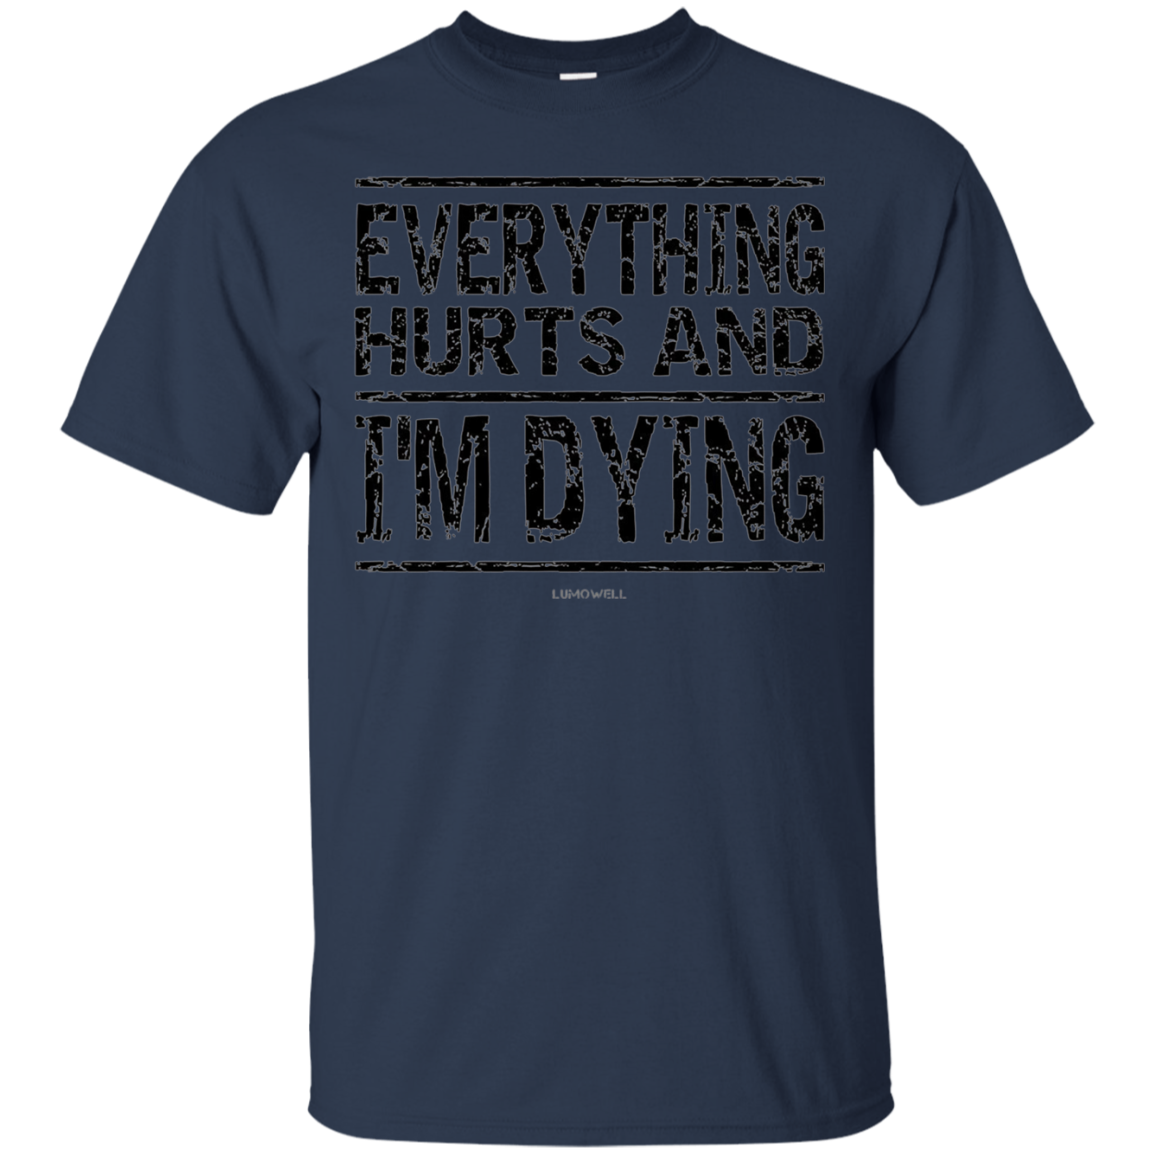 Funny Workout Shirts: Everything Hurts And I'm Dying Shirt